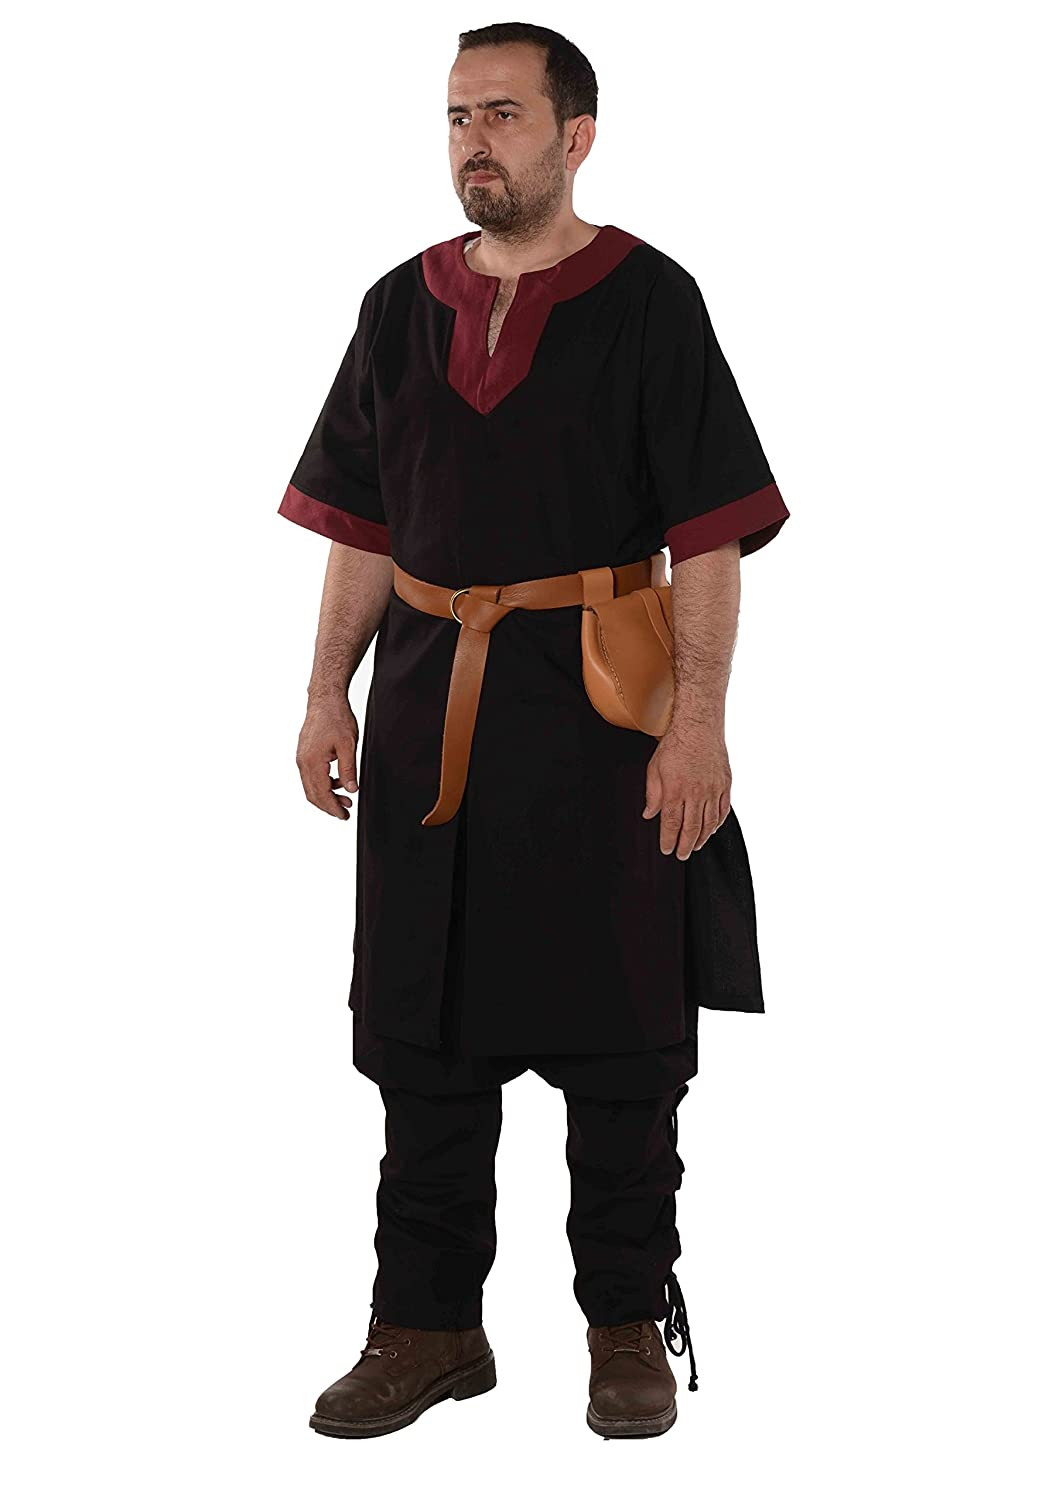 276255b4bd0 100 % Pure Cotton Linen-look Canvas Our Medieval and Viking tunic is much  more preferred by all re-enactors wardrobe. We have trimmed the bottom,  sleeves ...